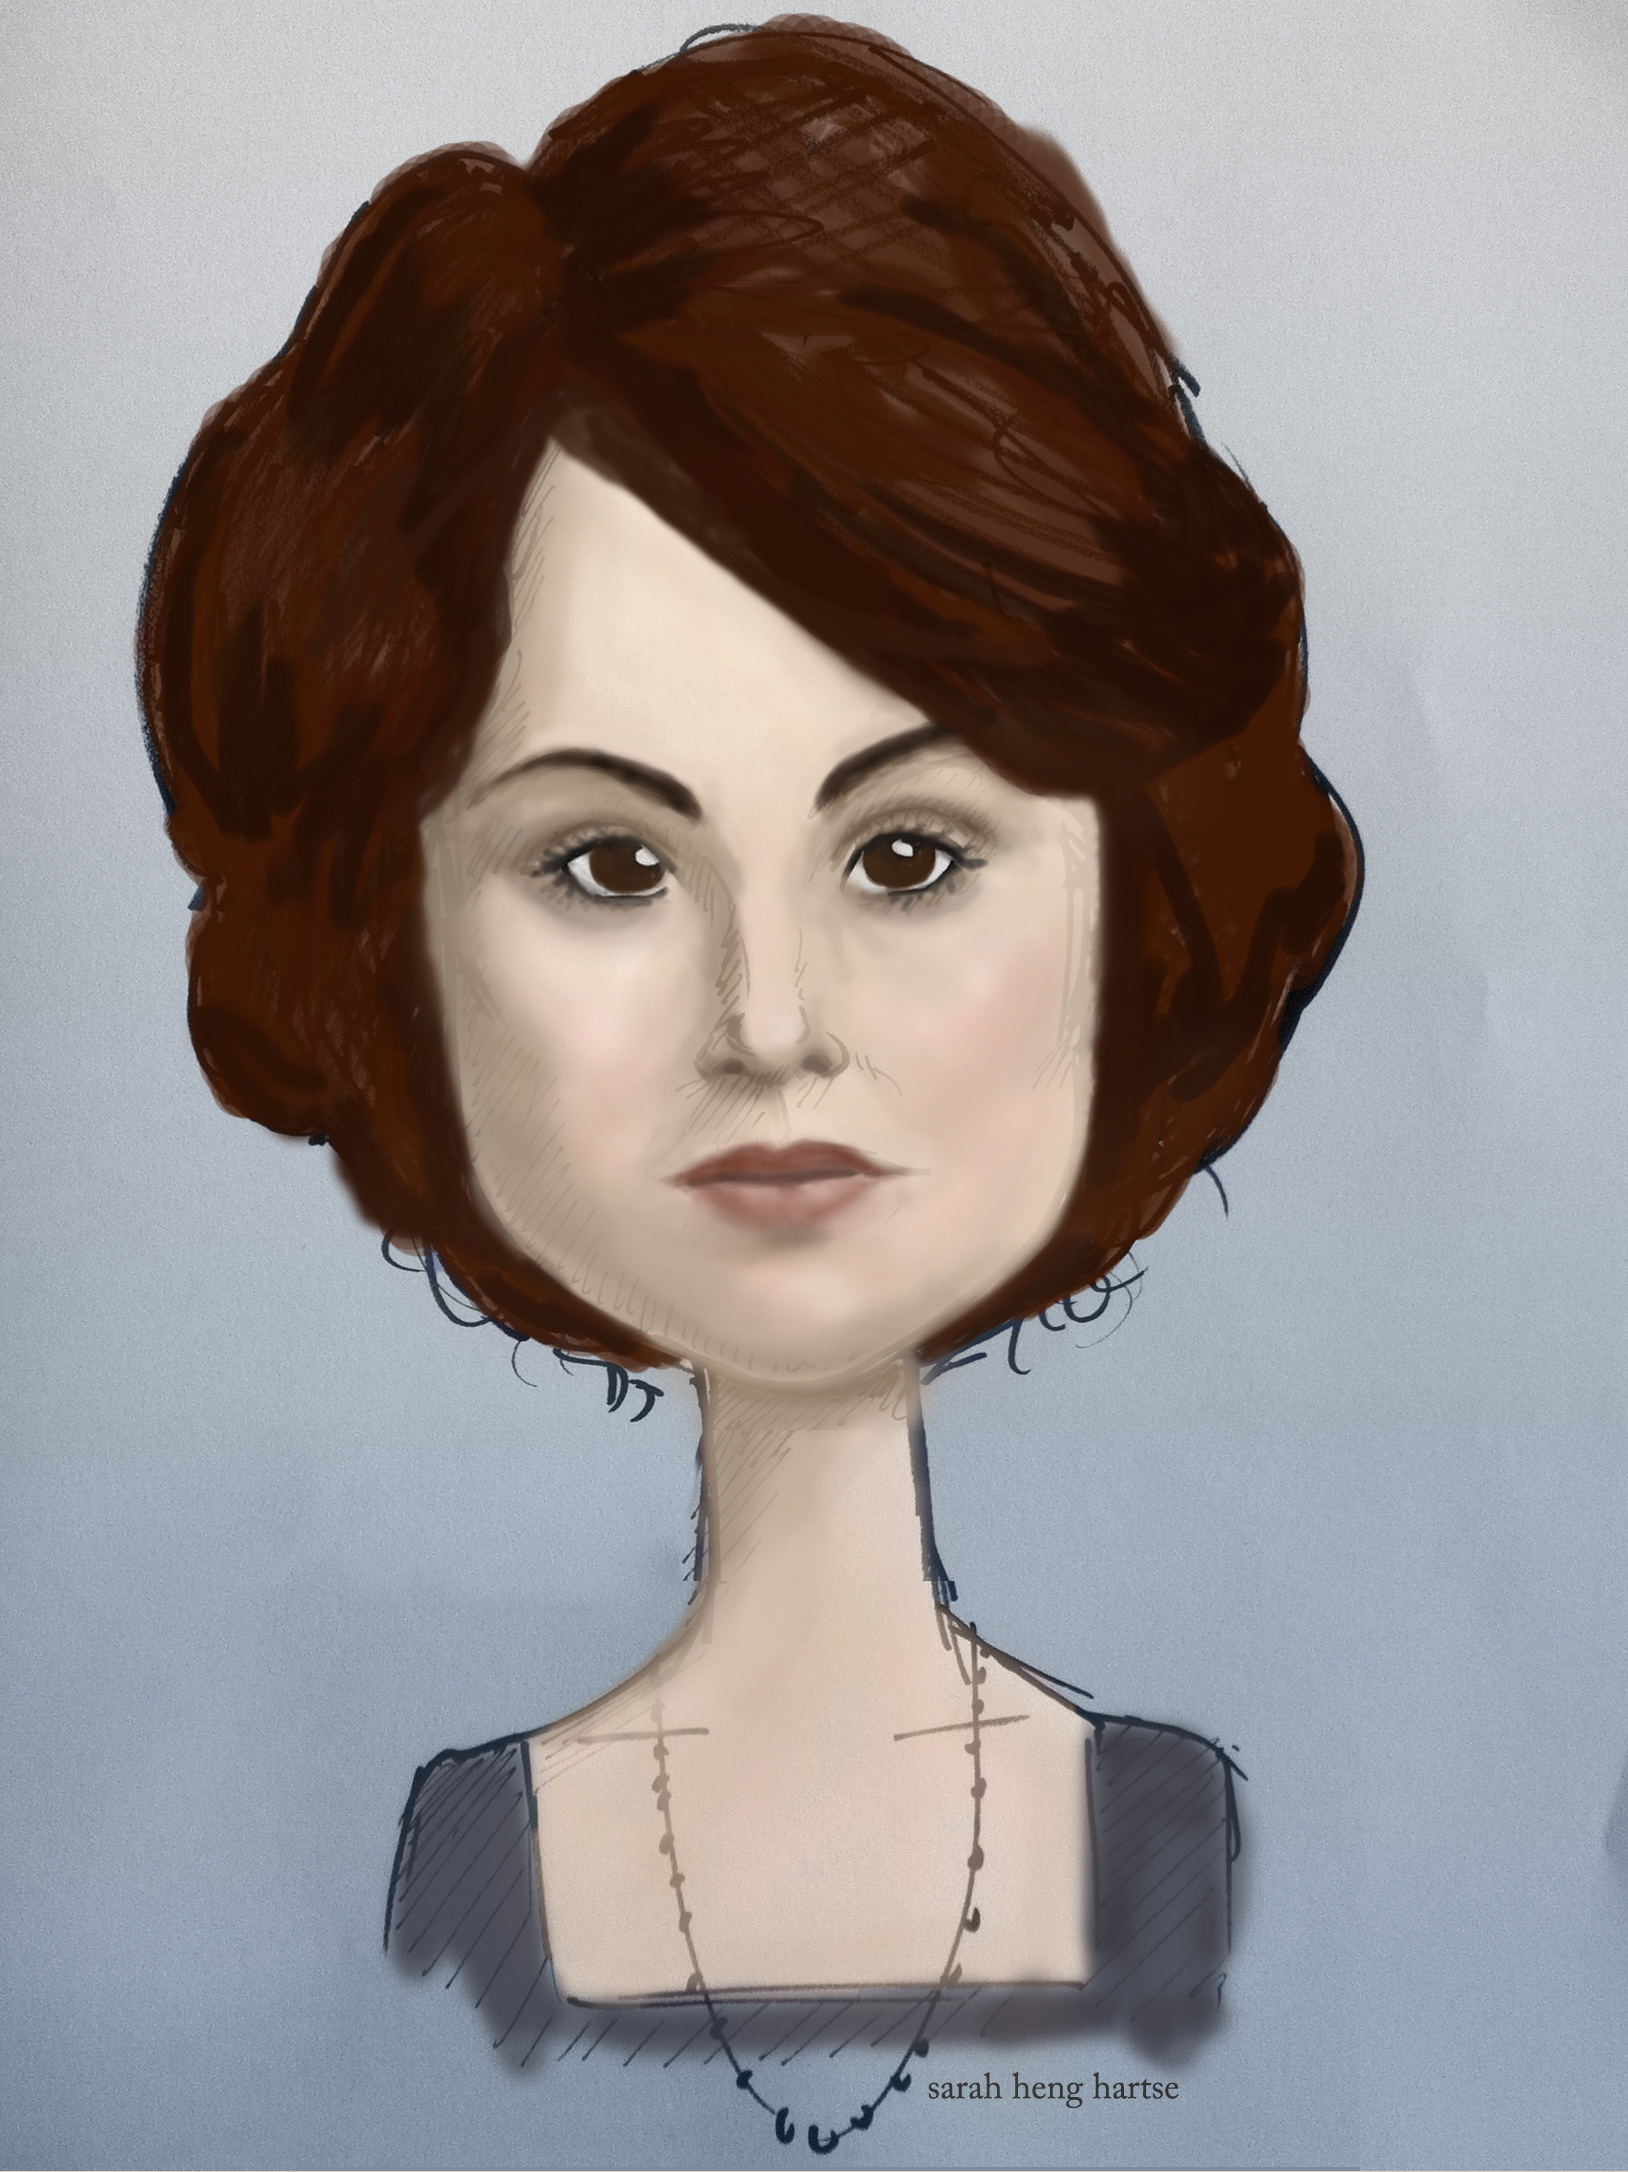 Caricature of Downton Abbey's Lady Mary Crawley played by Michelle Dockery